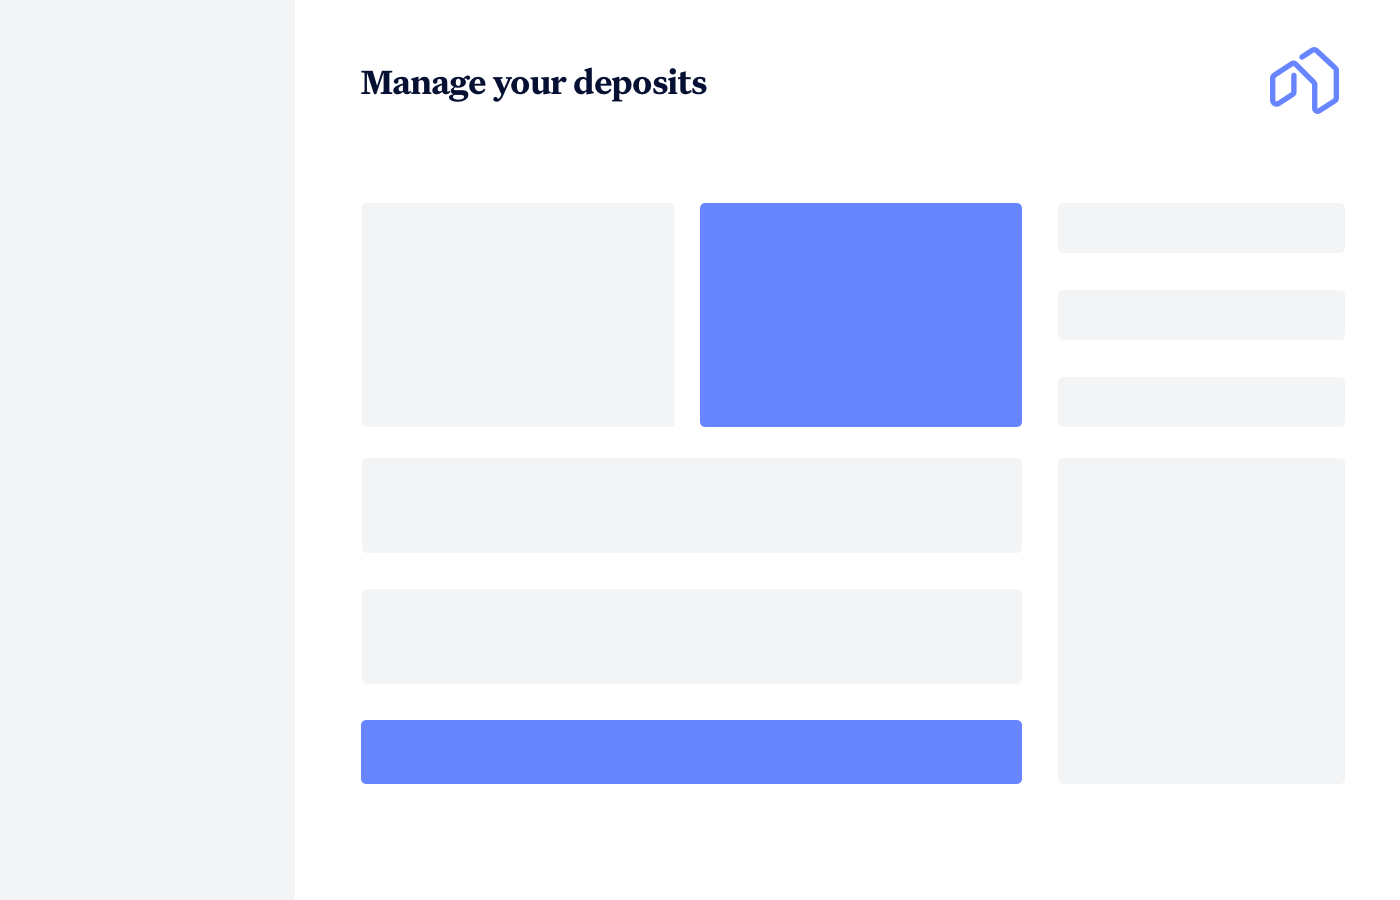 Manage Your Deposits